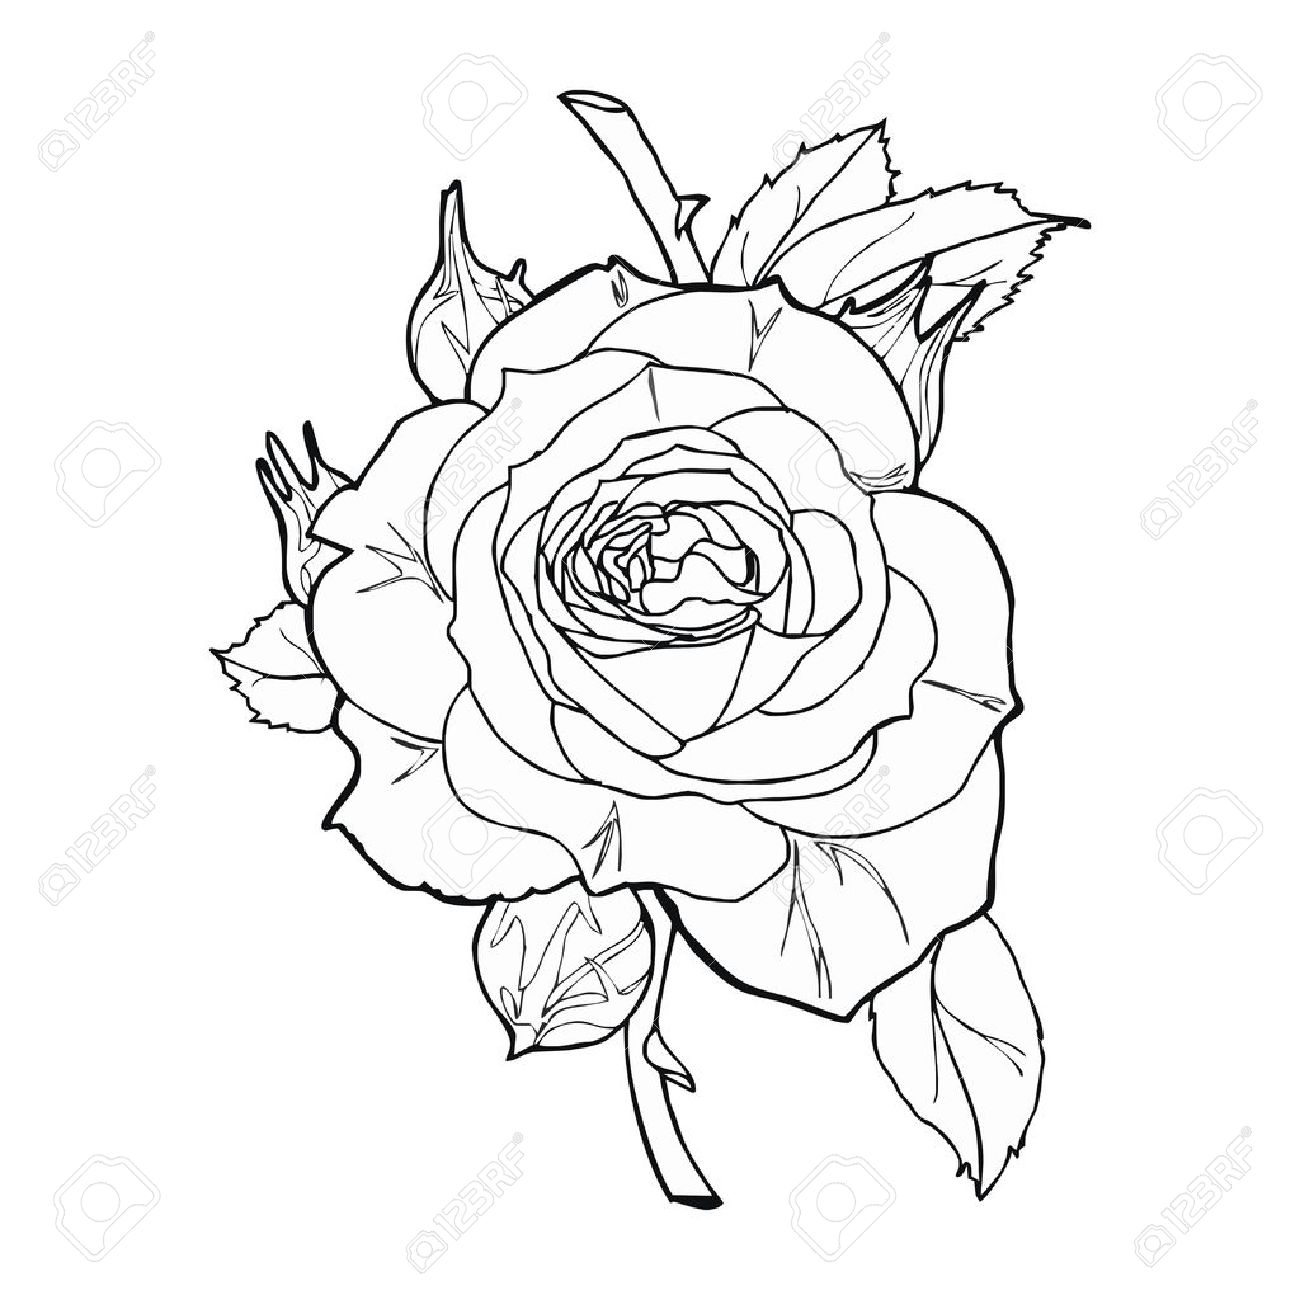 1300x1300 Rose Sketch Vector Royalty Free Cliparts, Vectors, And Stock